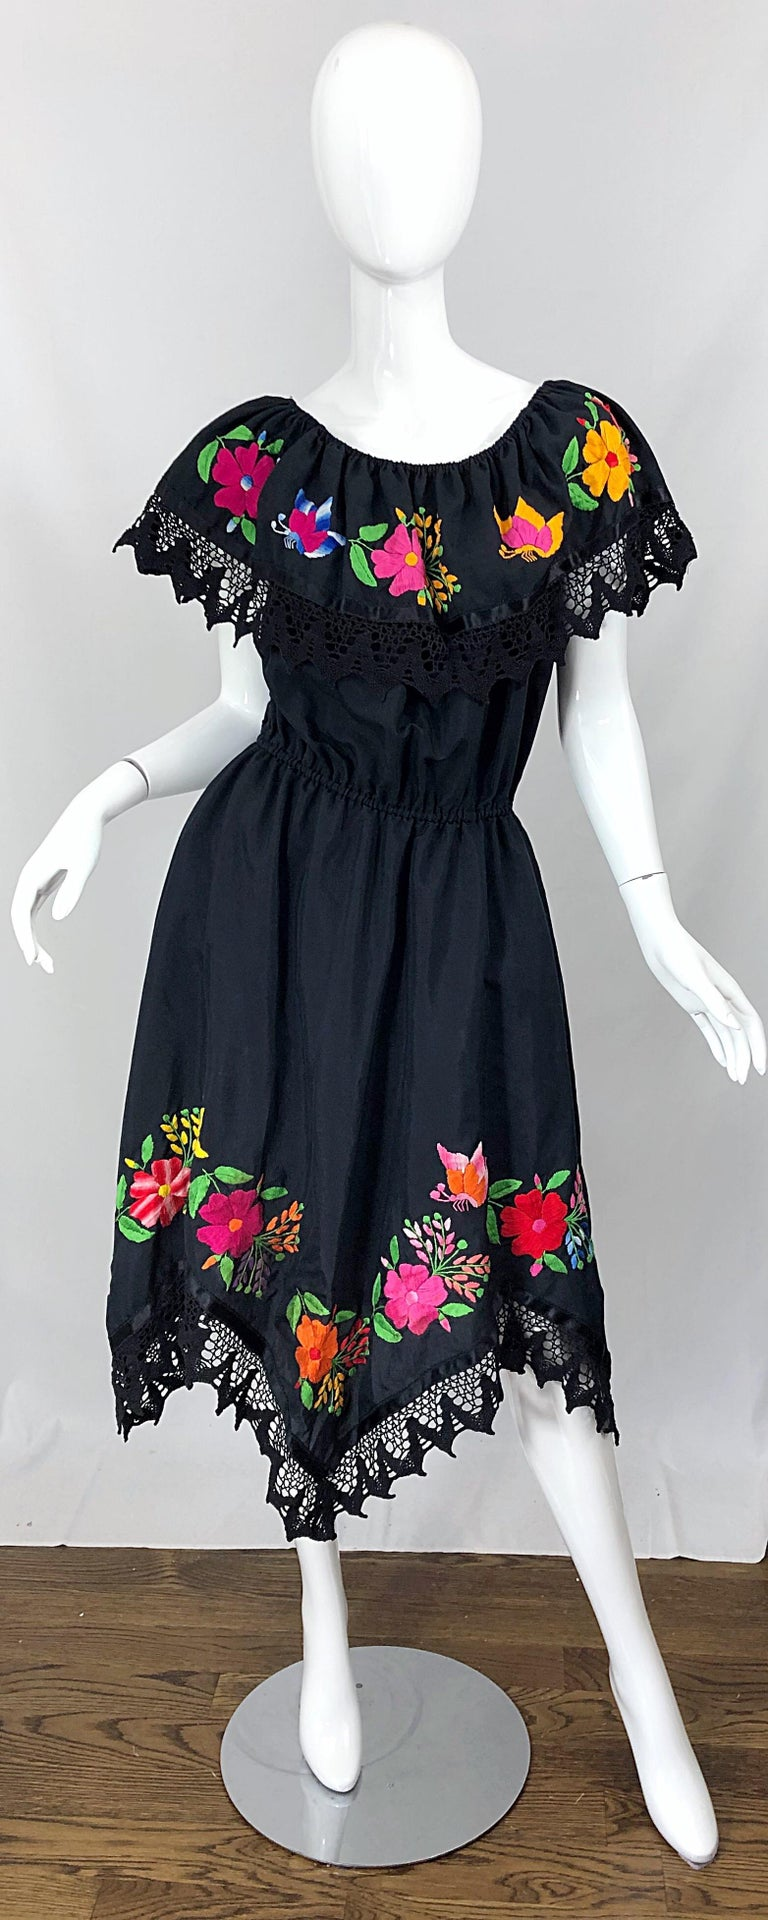 1970s Boho Chic Black Colorful Cotton Embroidered Handkerchief Hem Vintage Dress For Sale 5